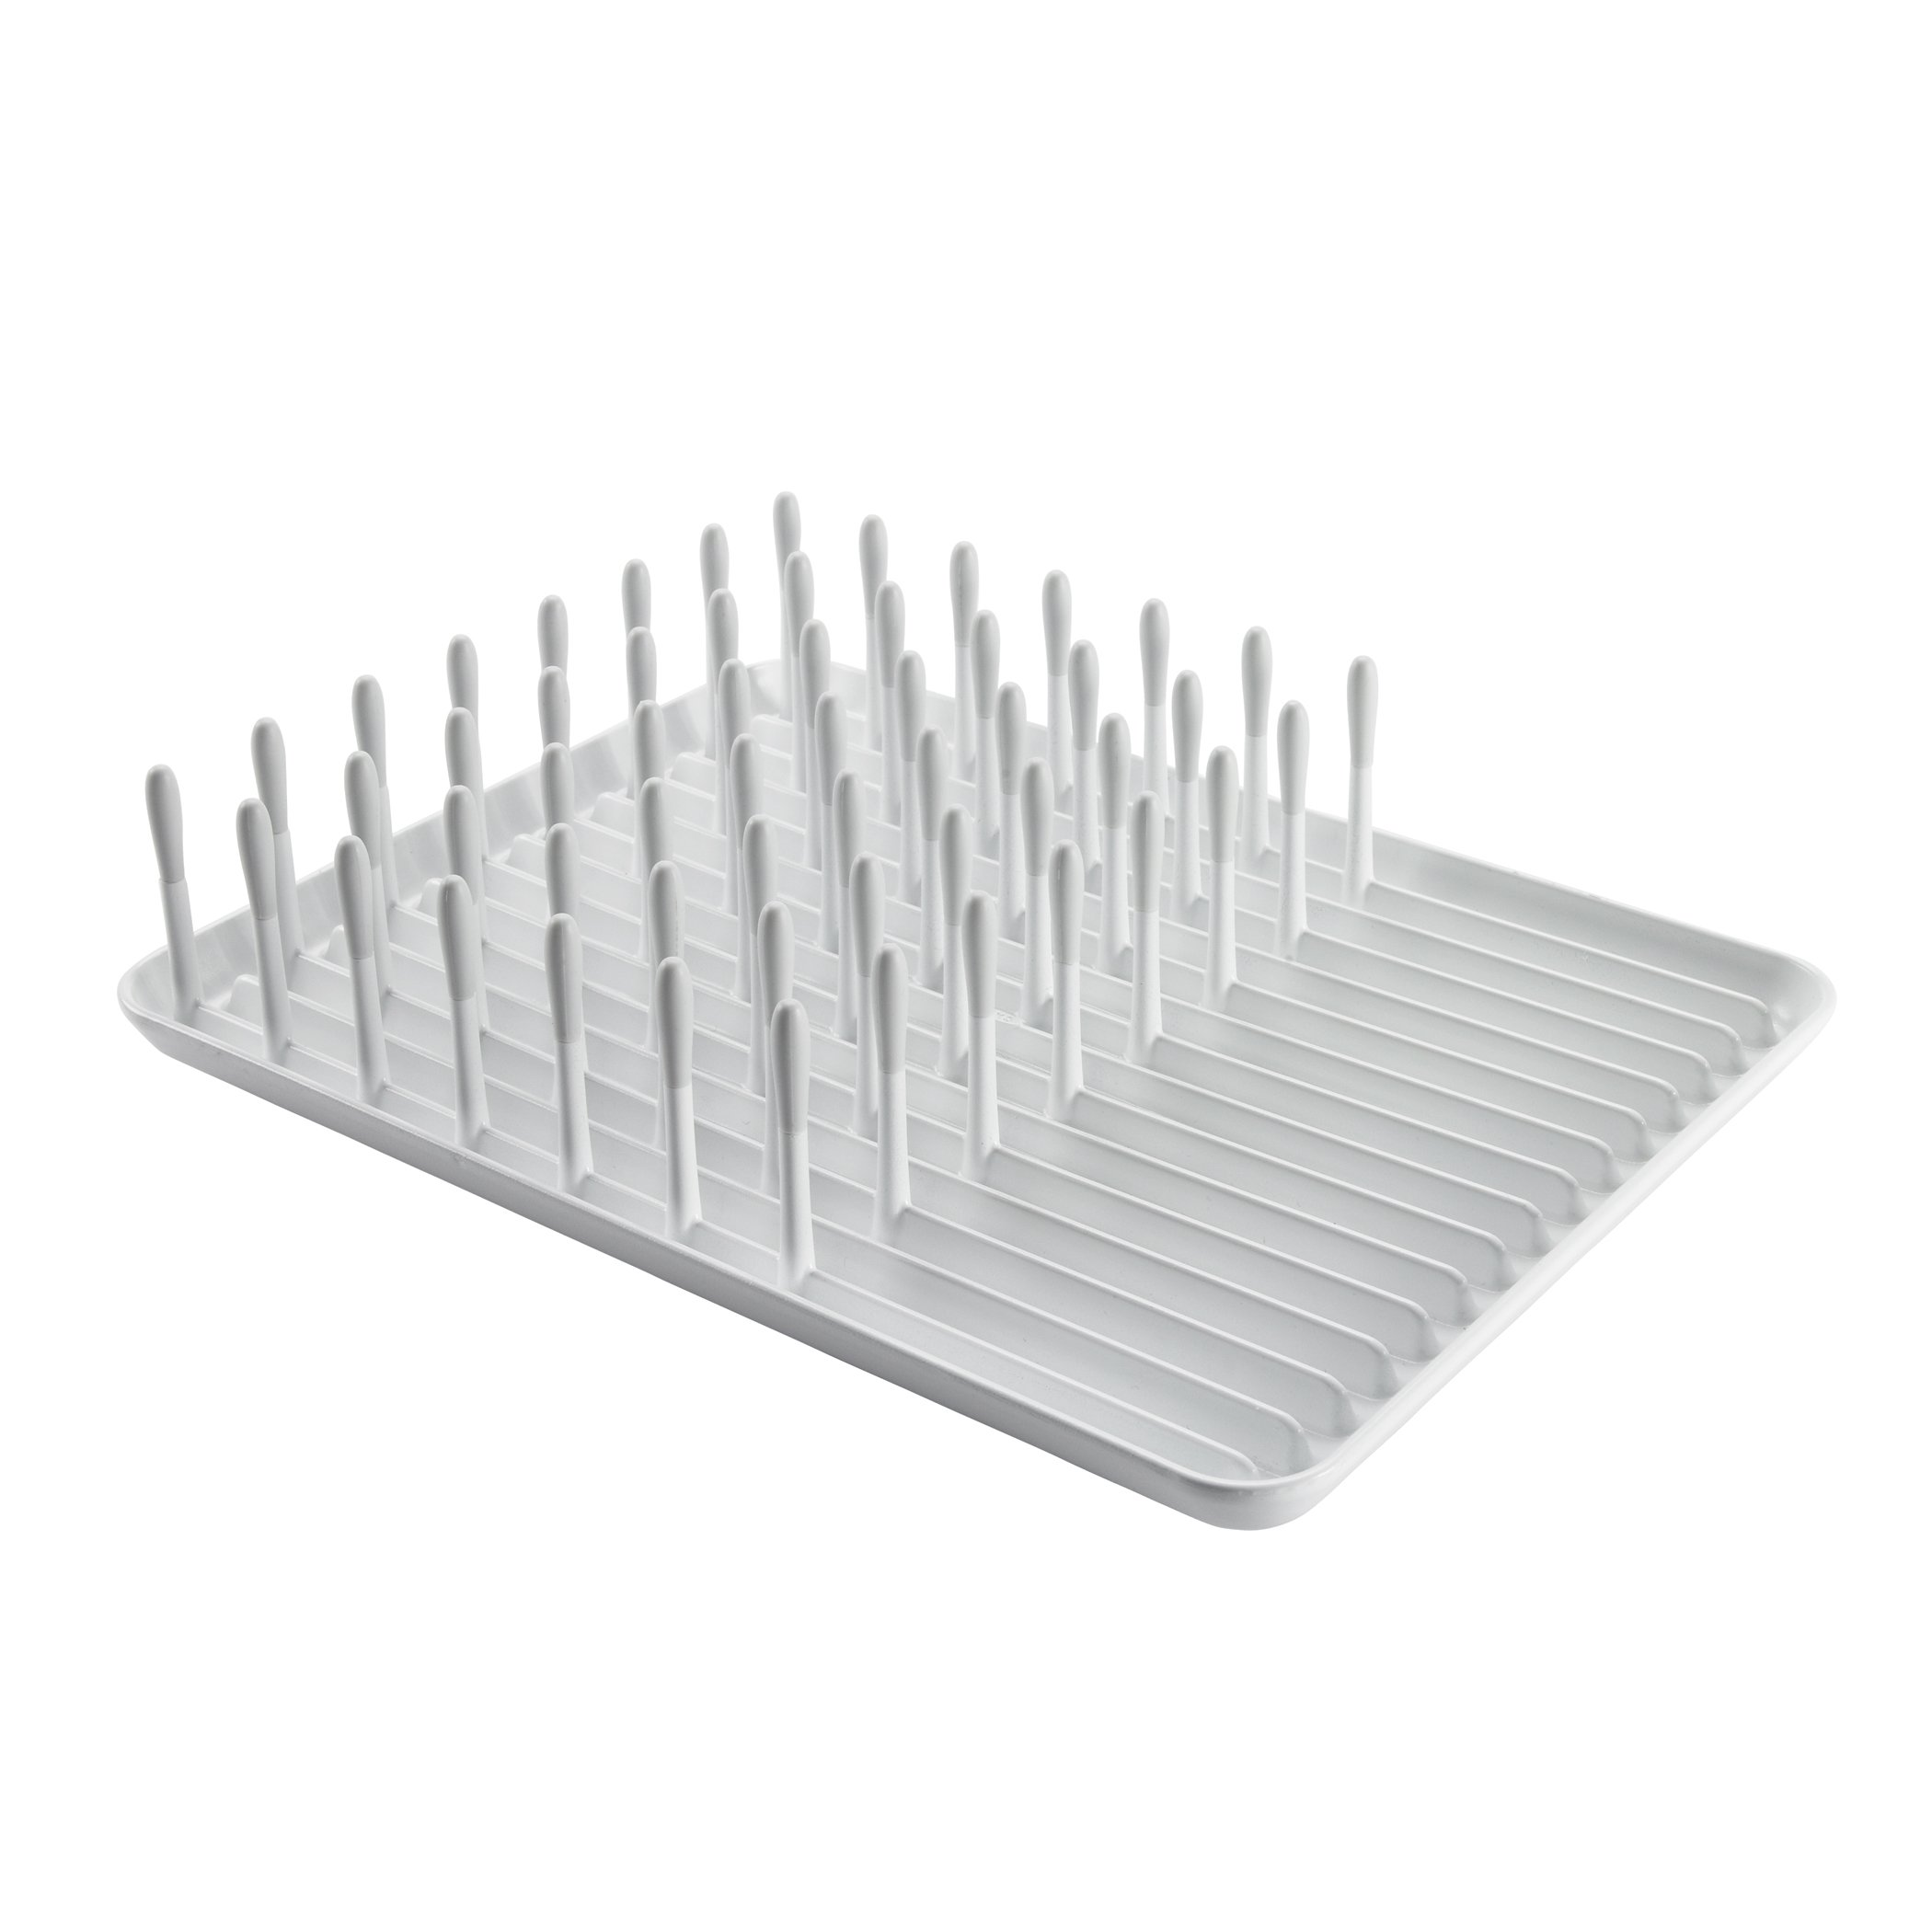 OXO Good Grips Compact Dish Rack by OXO